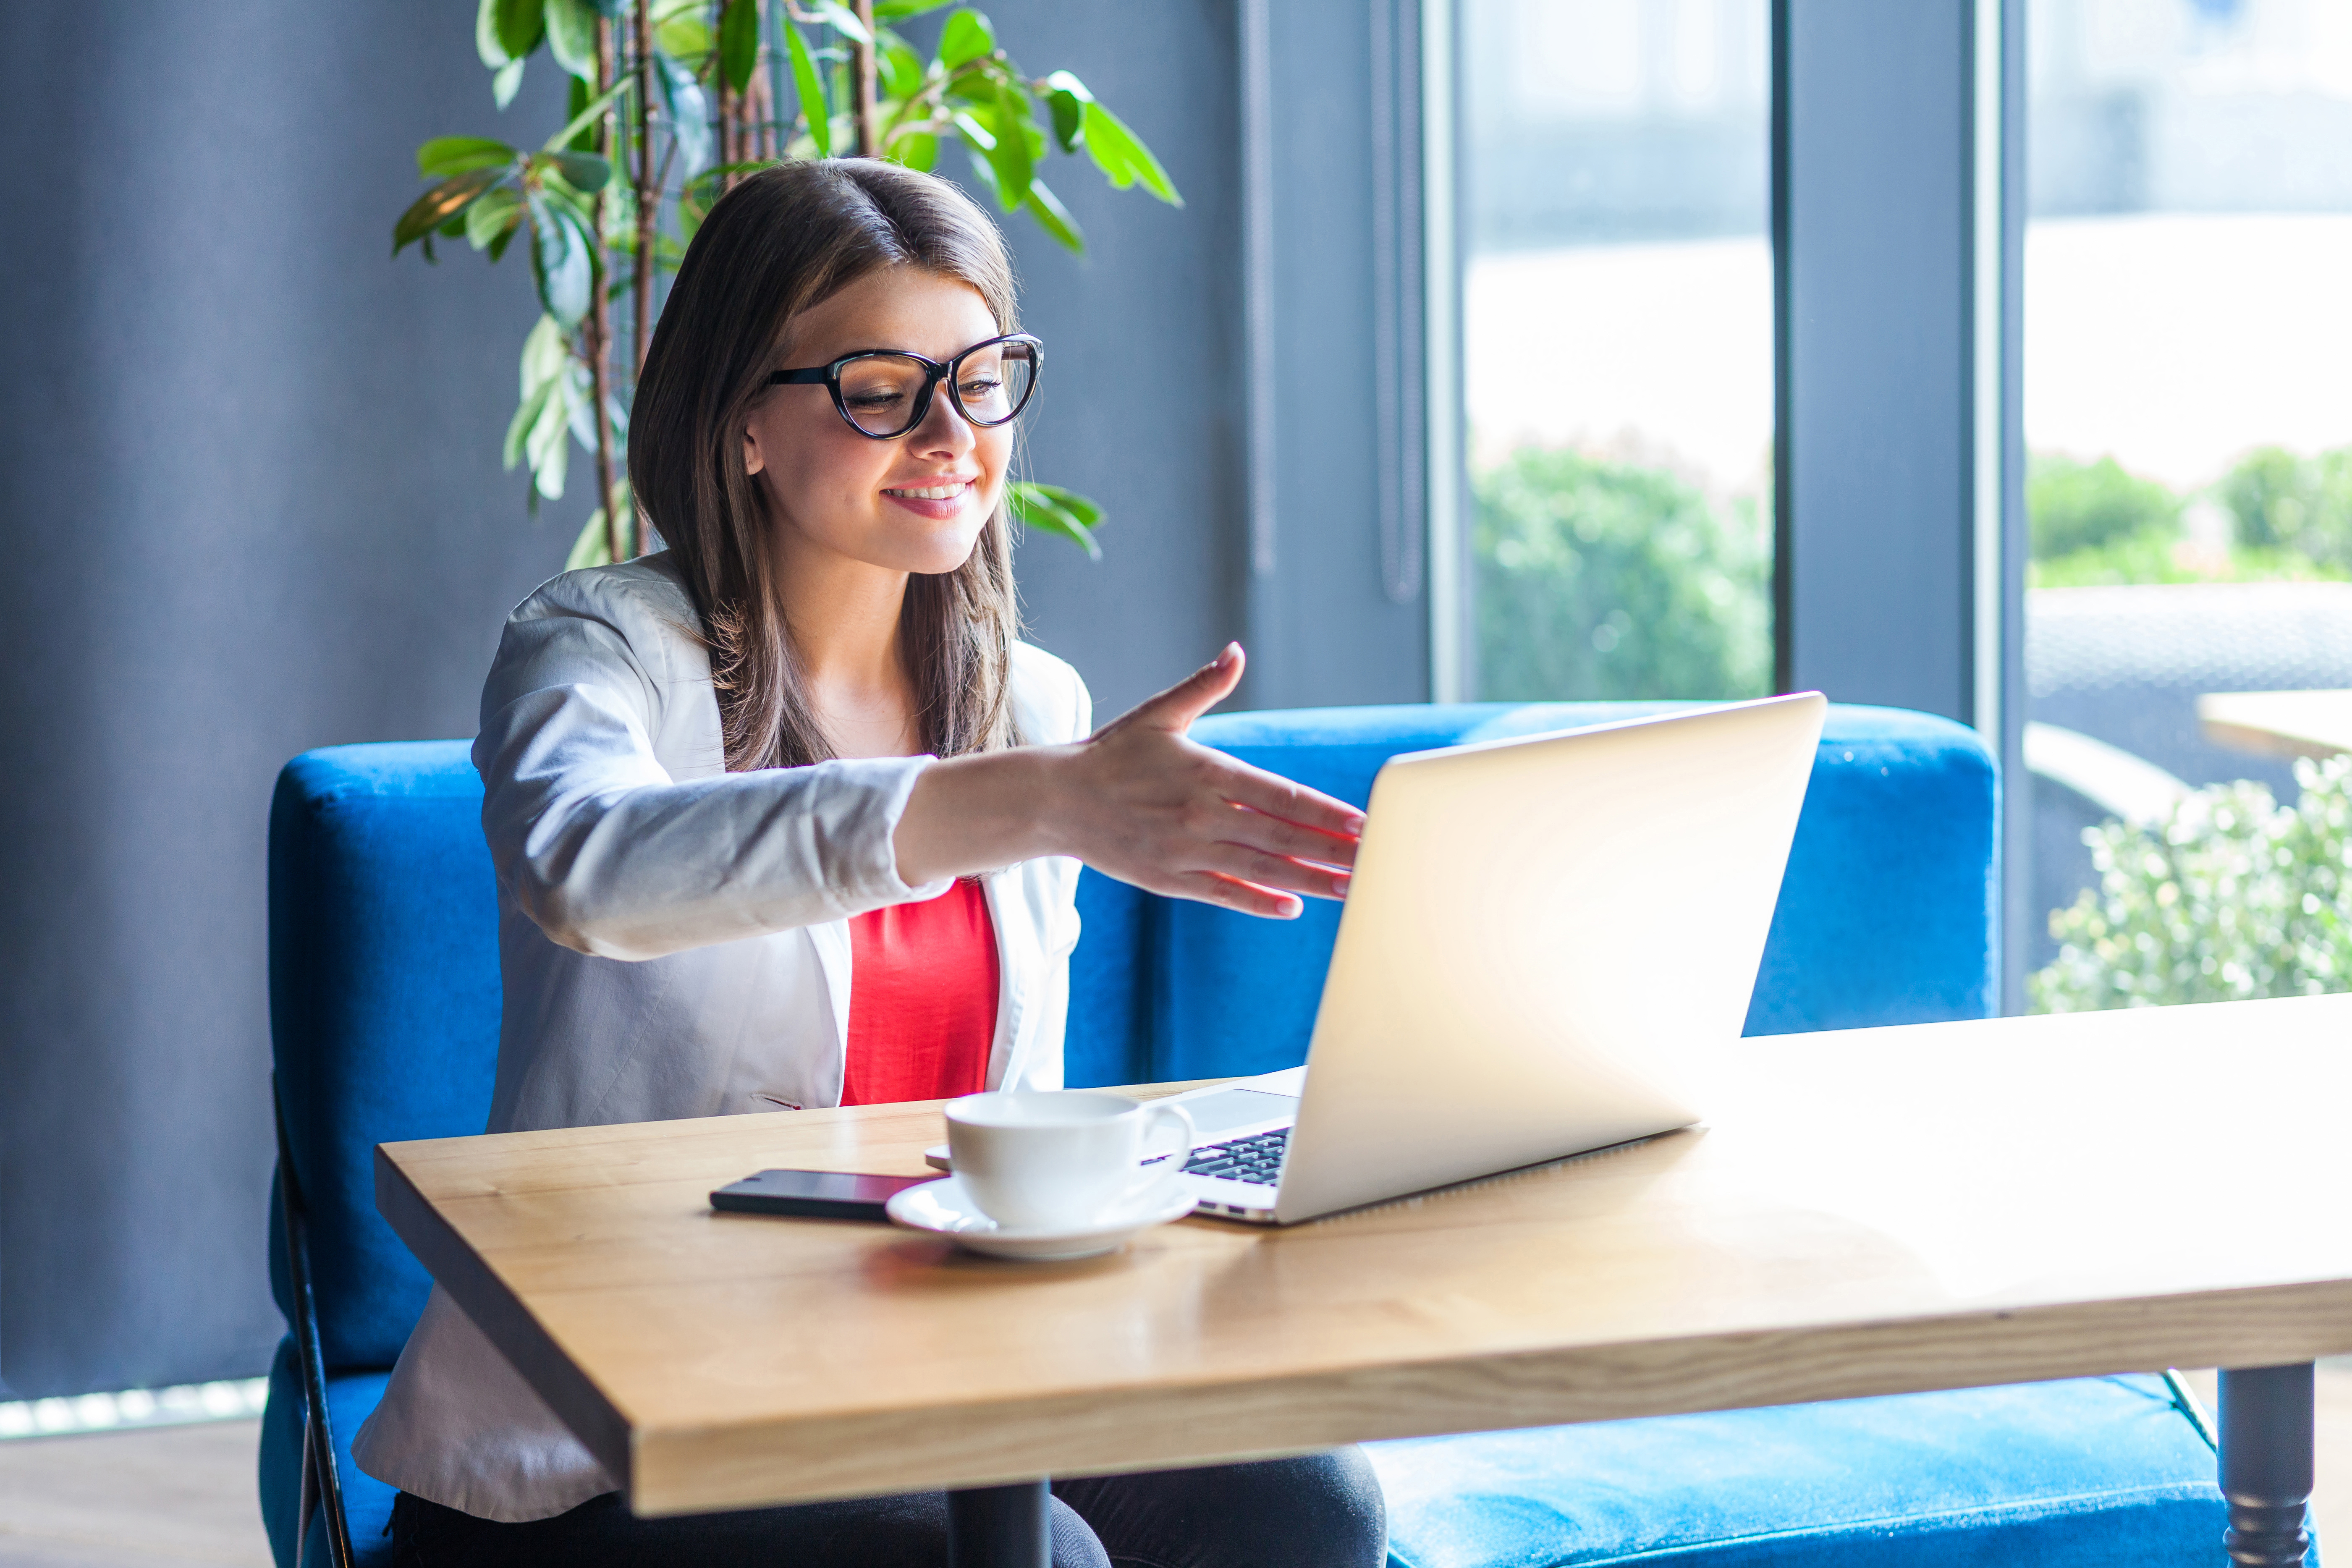 Hiring During COVID-19: An Employer's Guide